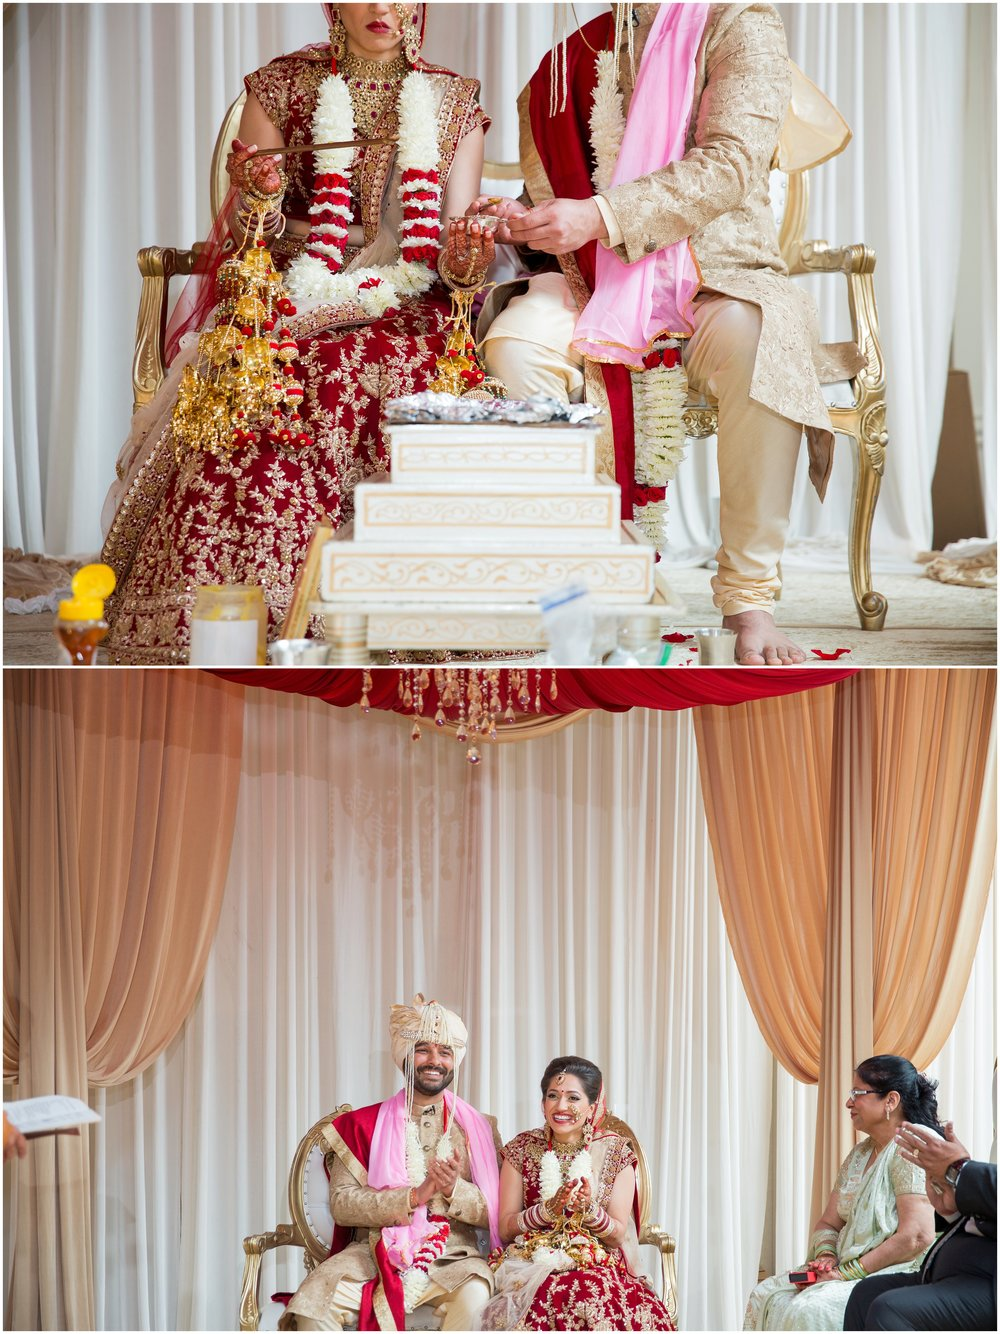 Le Cape Weddings - South Asian Wedding in Illinois - Tanvi and Anshul -0195_LuxuryDestinationPhotographer.jpg